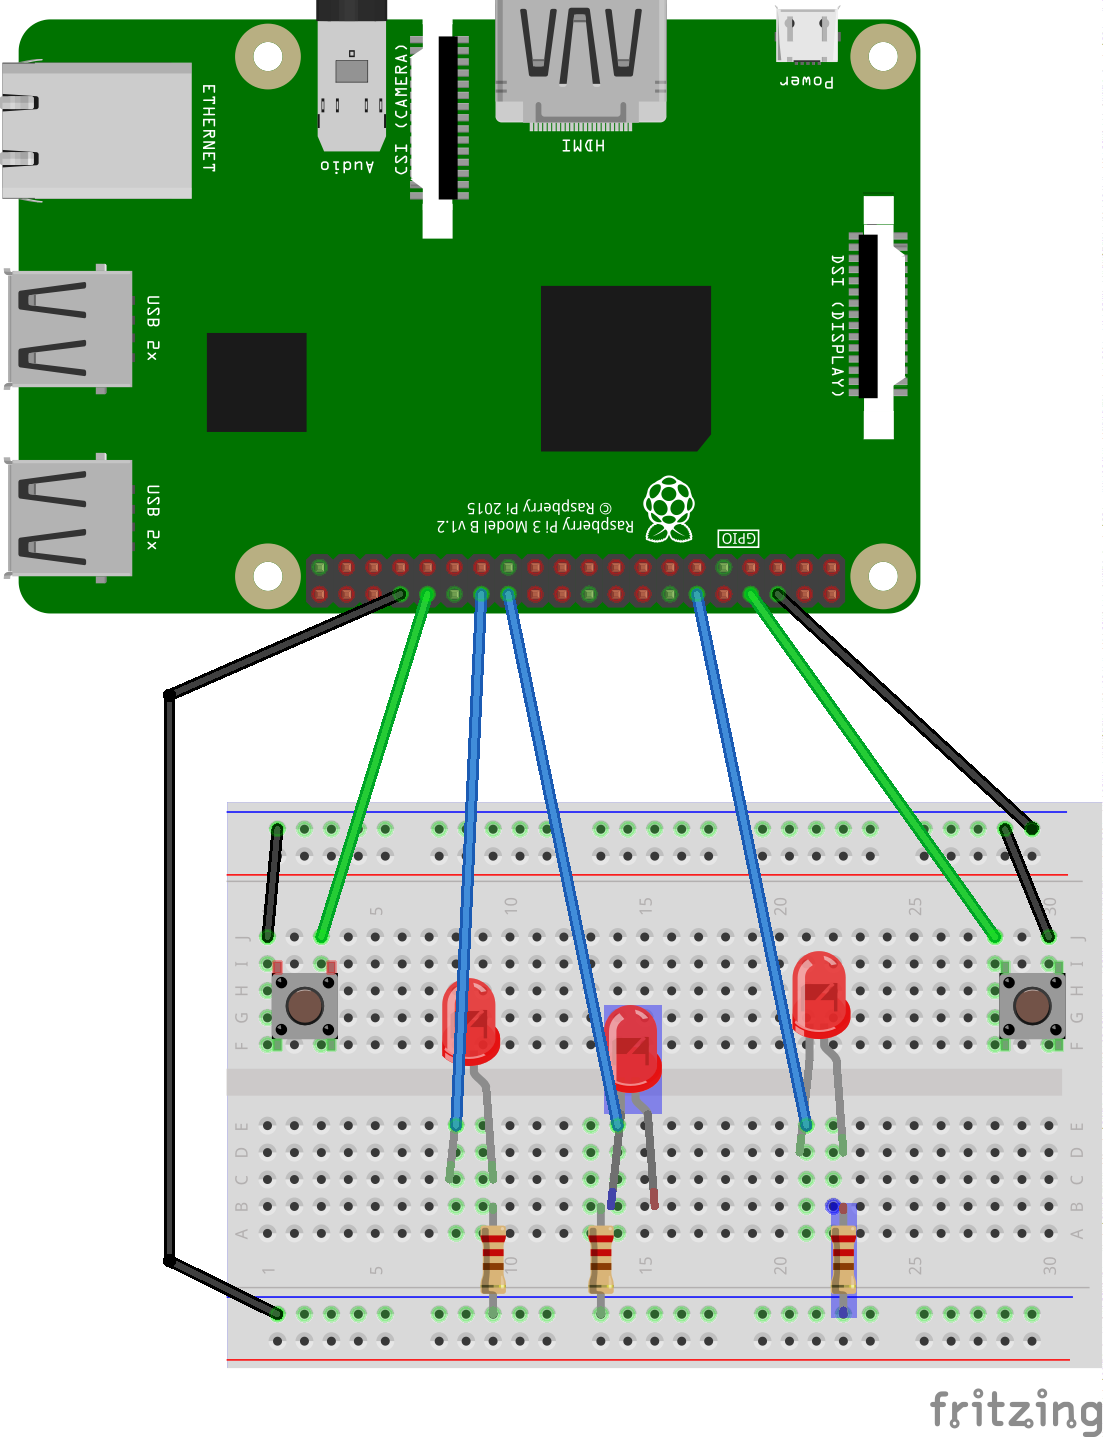 Here's the circuit for the code